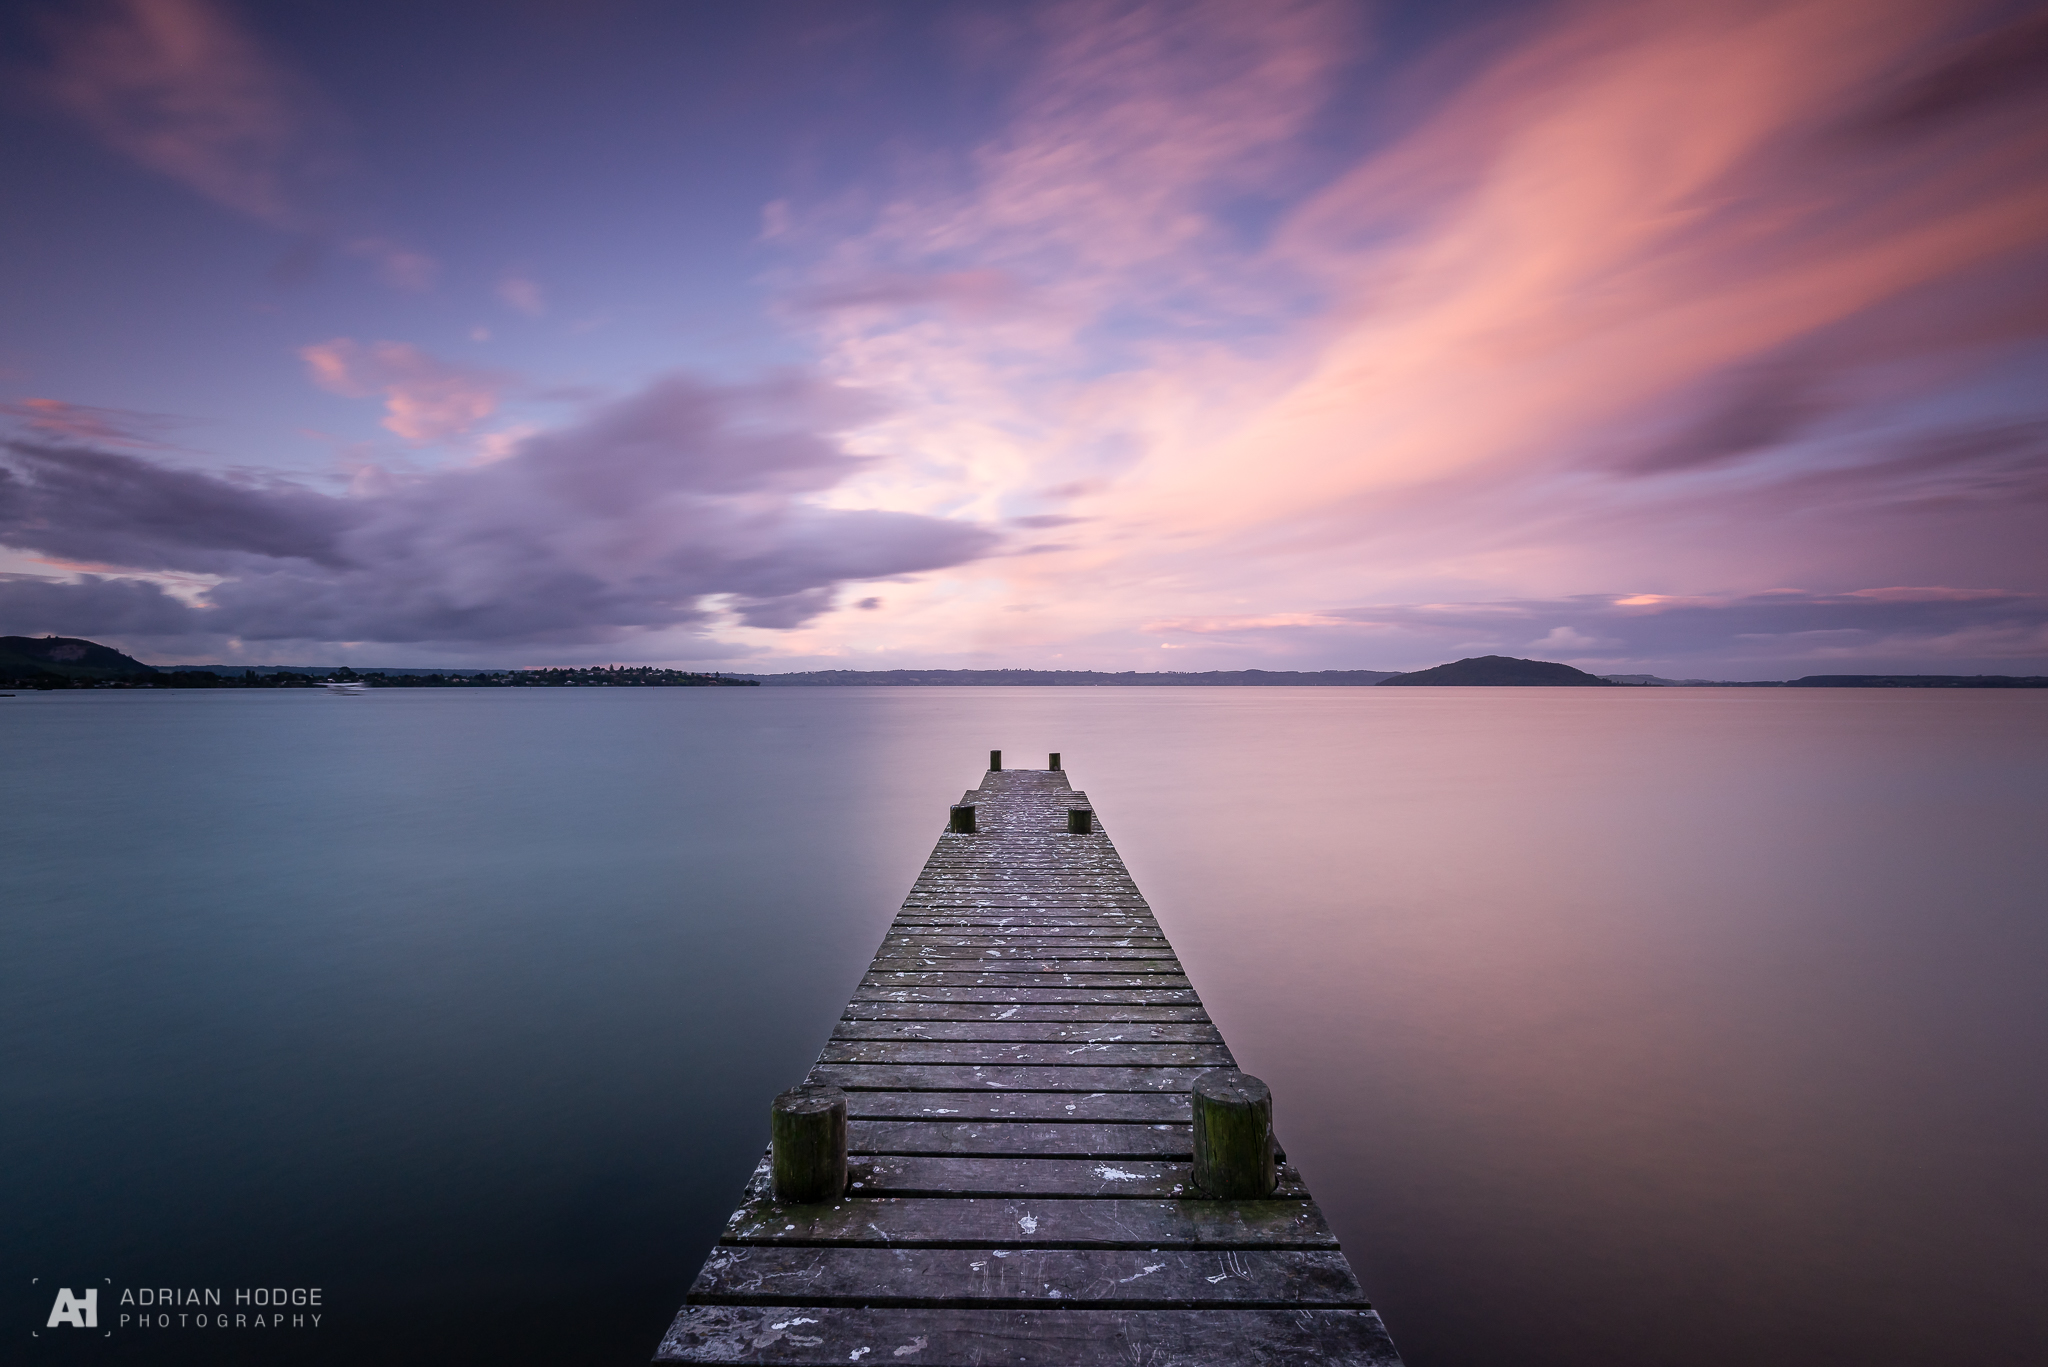 A long exposure of a jetty pointing straight out into a lake with a colourful pink sky at sunset.